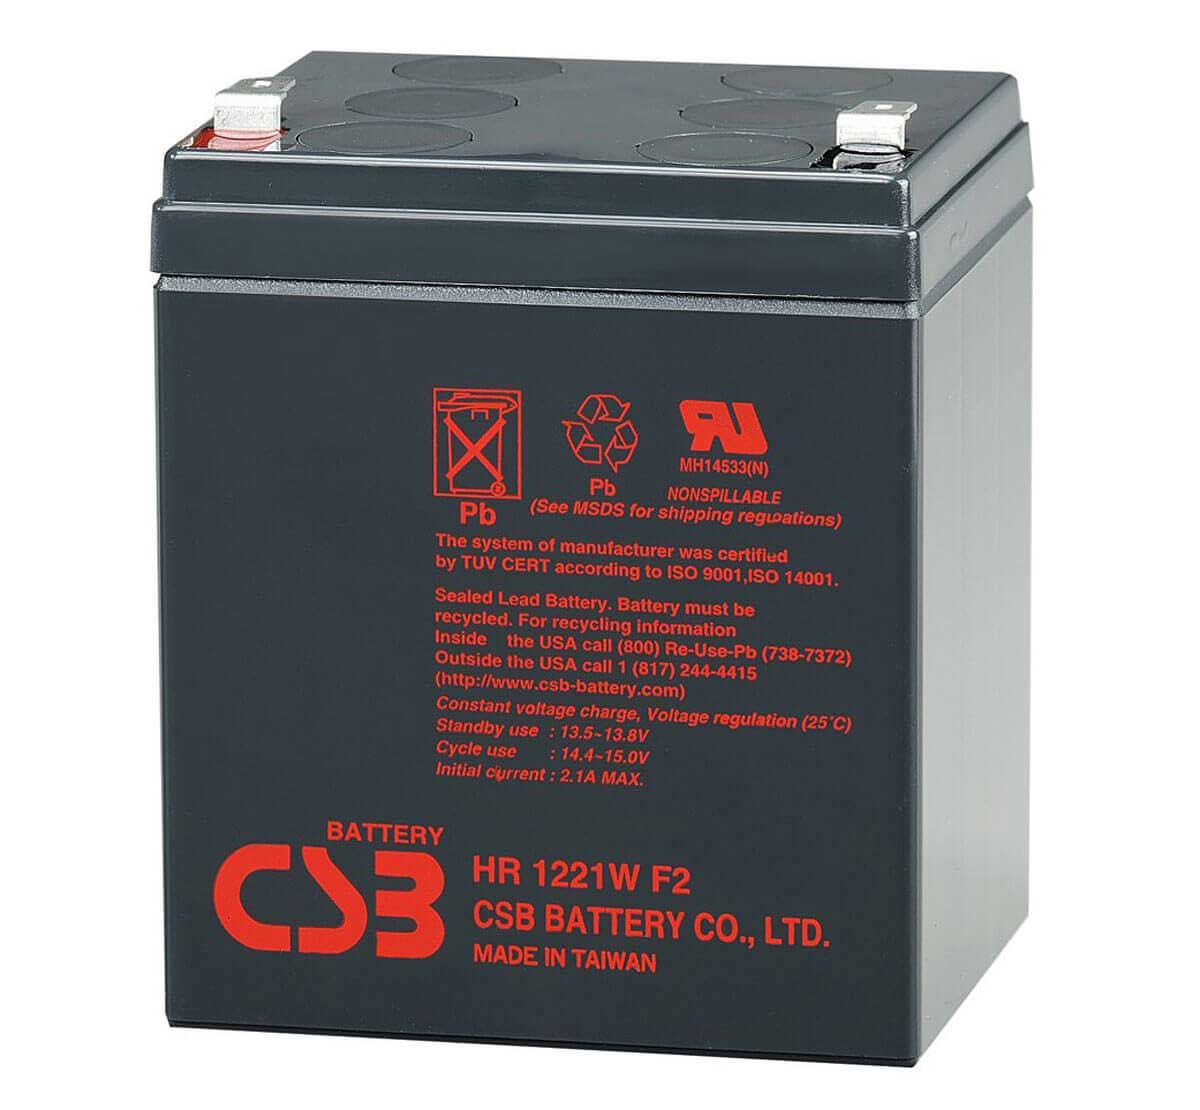 MDS29 UPS Battery Kit - Replaces APC RBC29